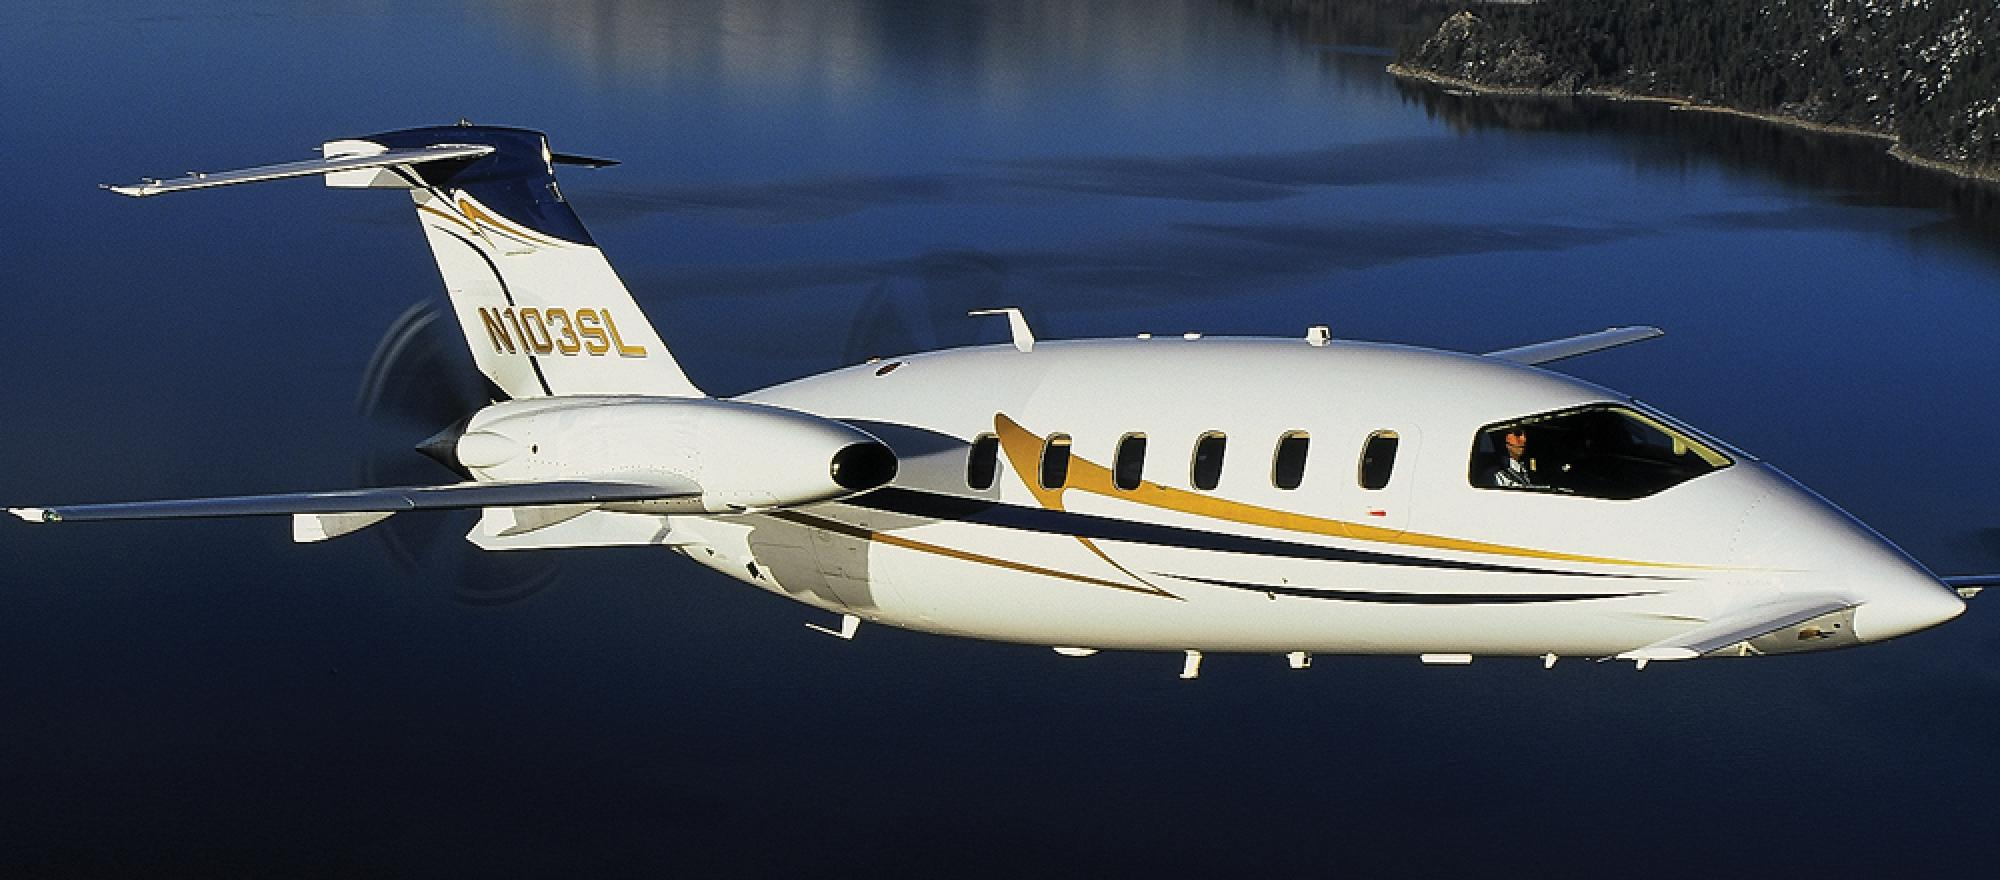 Avantair's 56 Piaggio Avanti twin turboprops have been grounded since June 6.